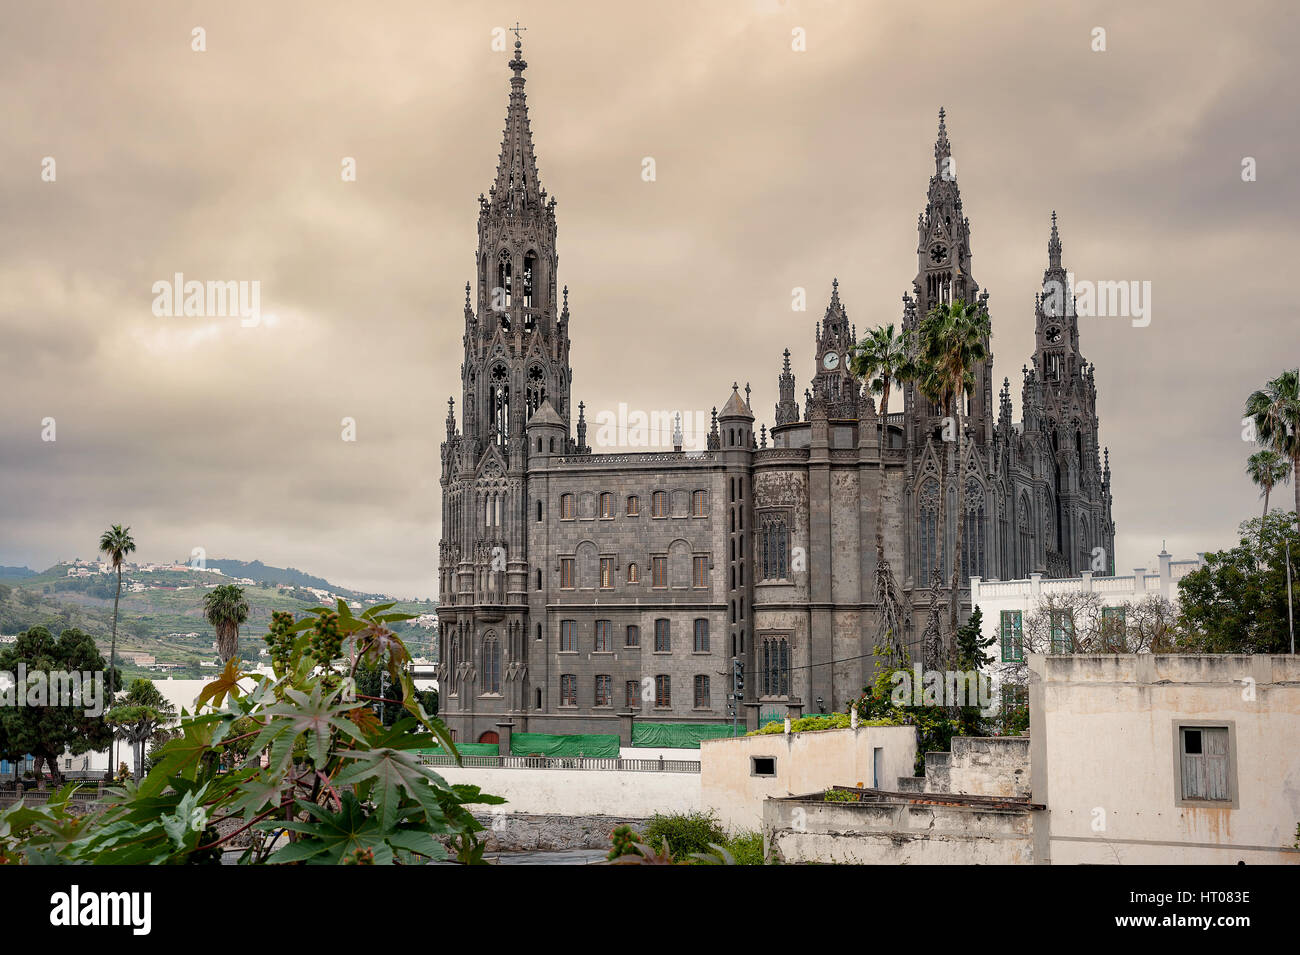 View of medieval gothic cathedral of San Juan Bautista in Arucas, Gran Canaria, Spain Stock Photo